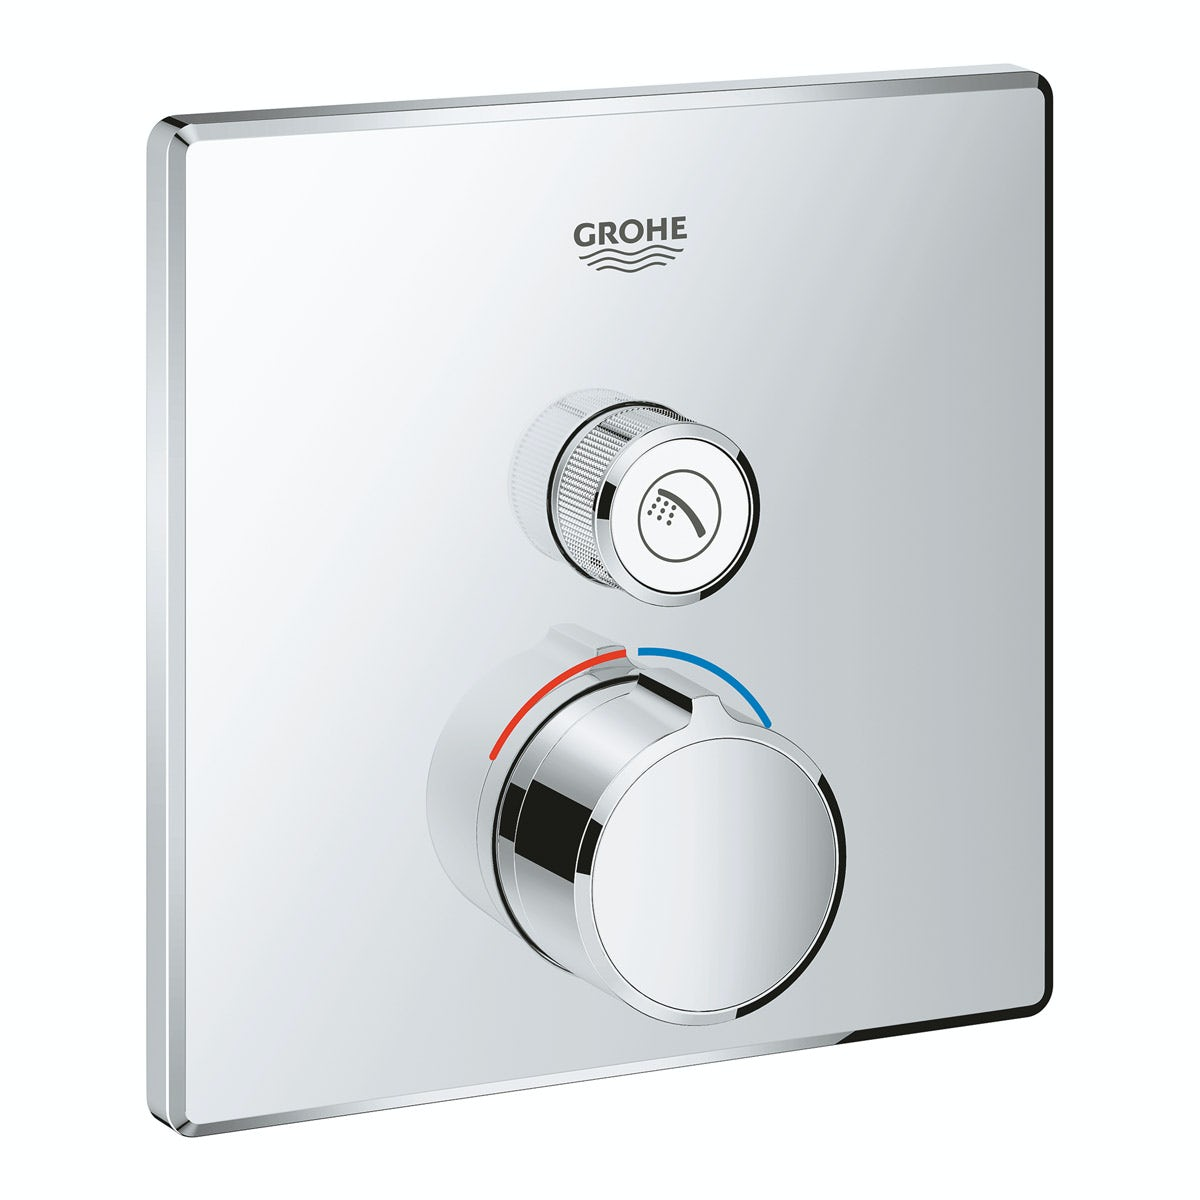 Grohe SmartControl square concealed 1 way shower valve trimset